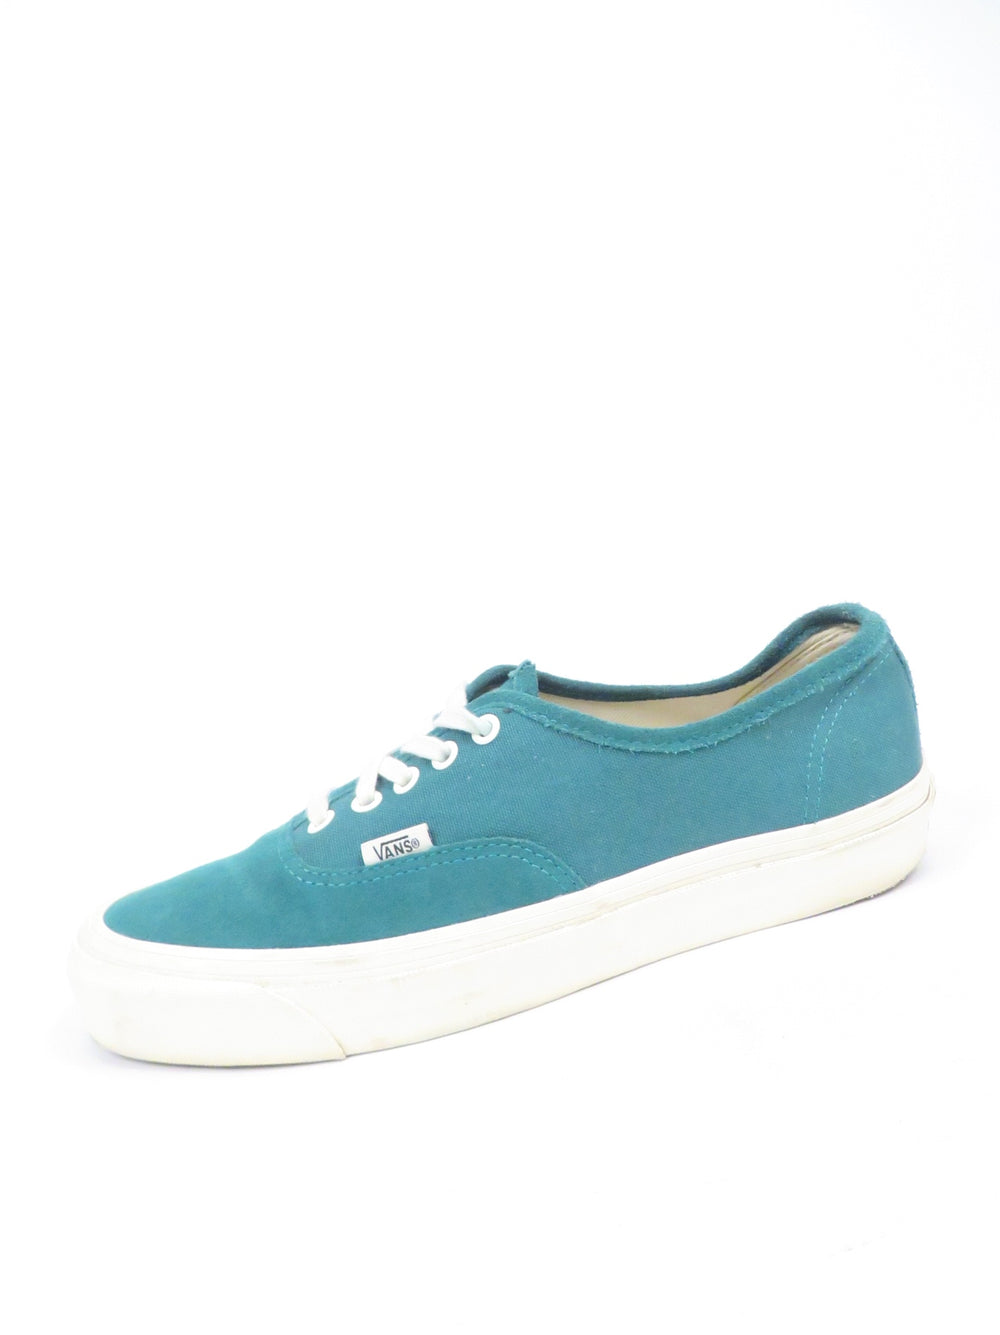 vans originals 'authentic' teal/bone shoes. features 'vans' logo tab at side and heel. vulcanized waffle grip sole.